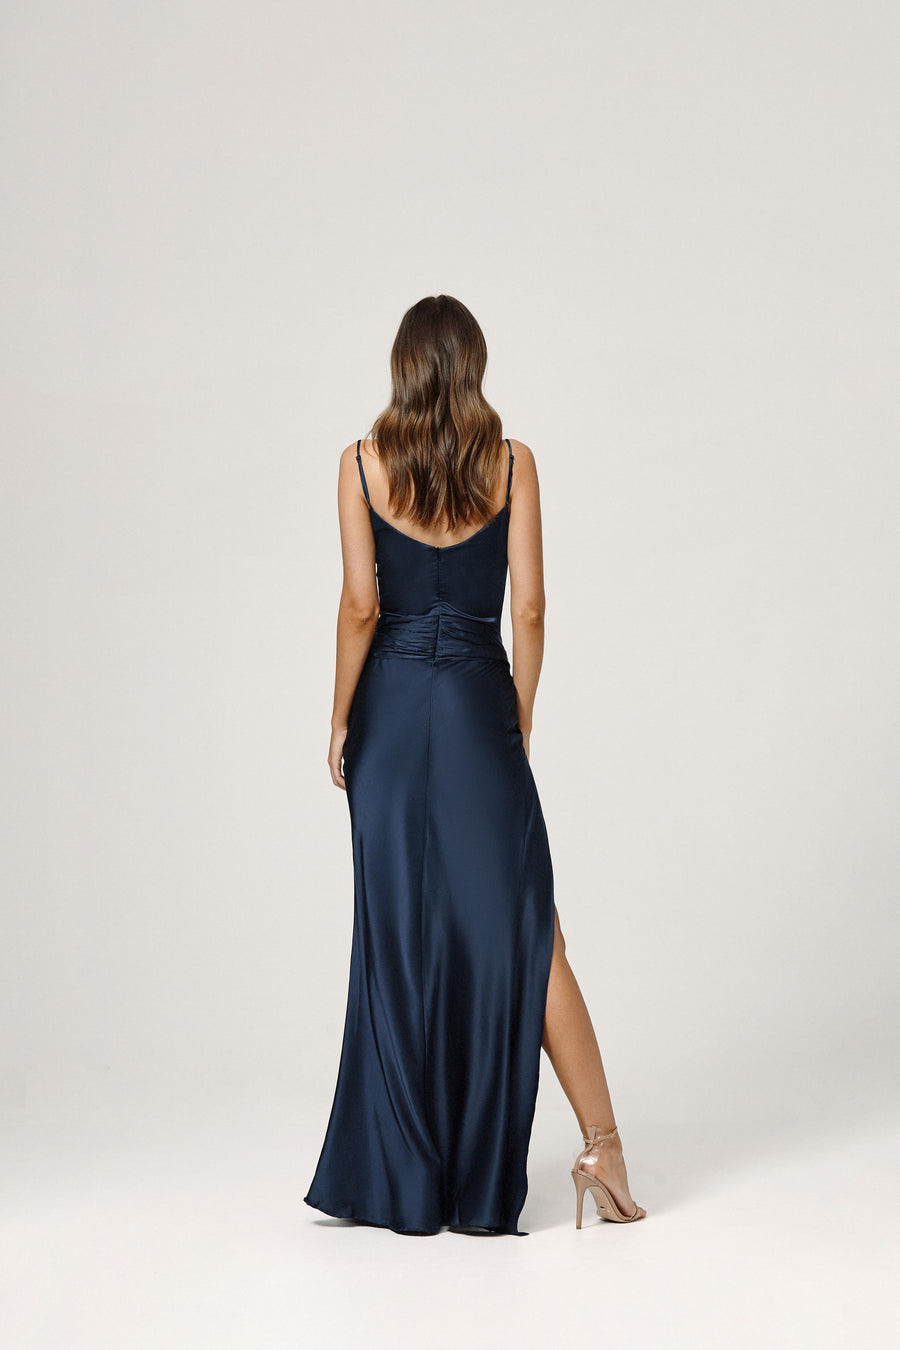 Ashton Dress  - Navy